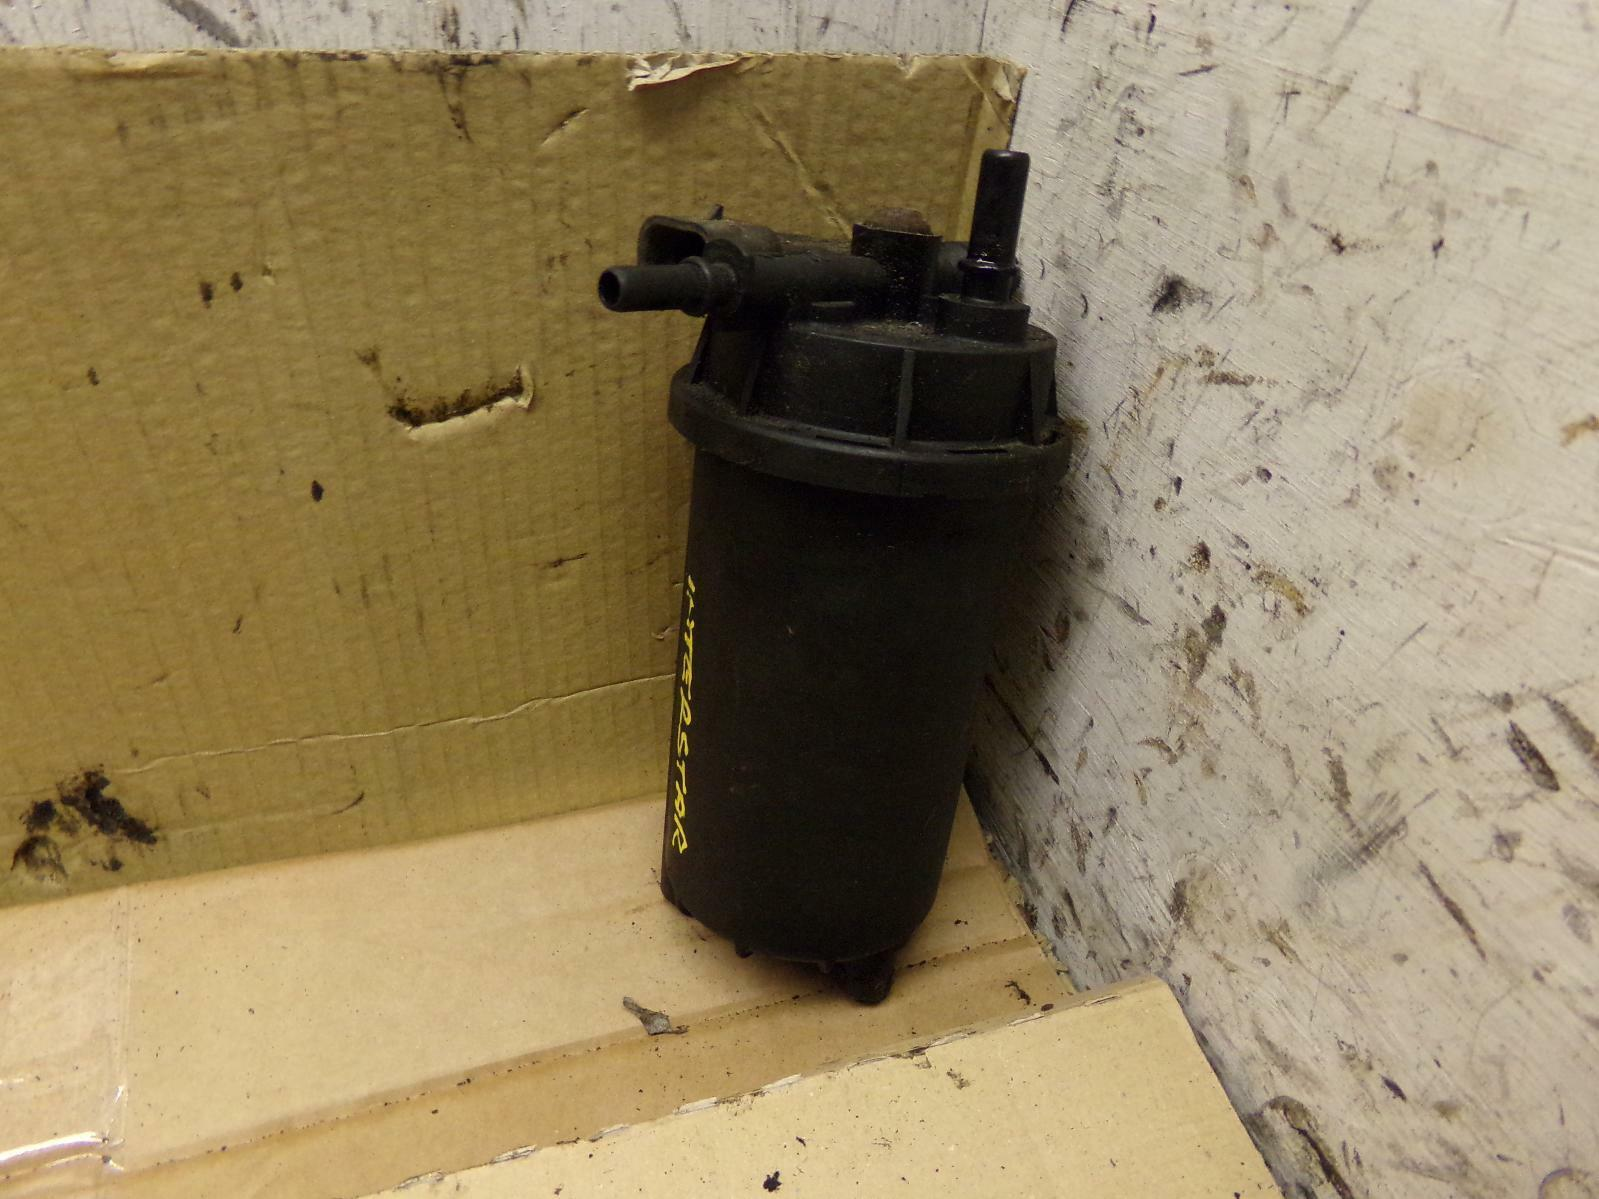 Nissan Interstar 03 08 25 Dci Fuel Filter Housing 2900 Sprinter Location 1 Of 1only Available